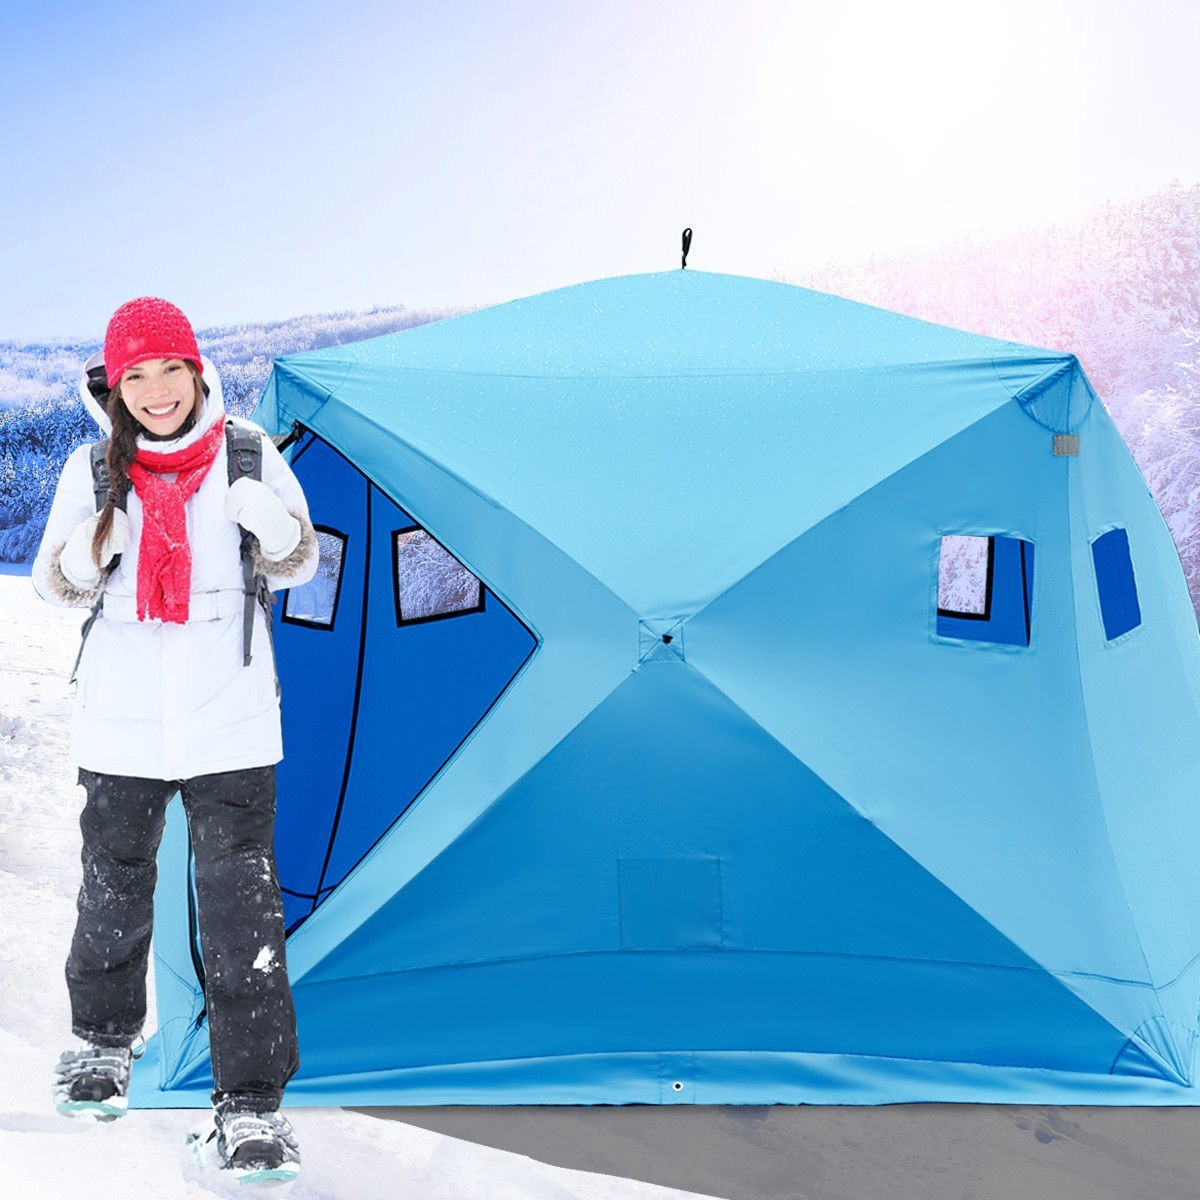 Waterproof Pop-up 4-person Ice Shelter Fishing Tent Outdoor by